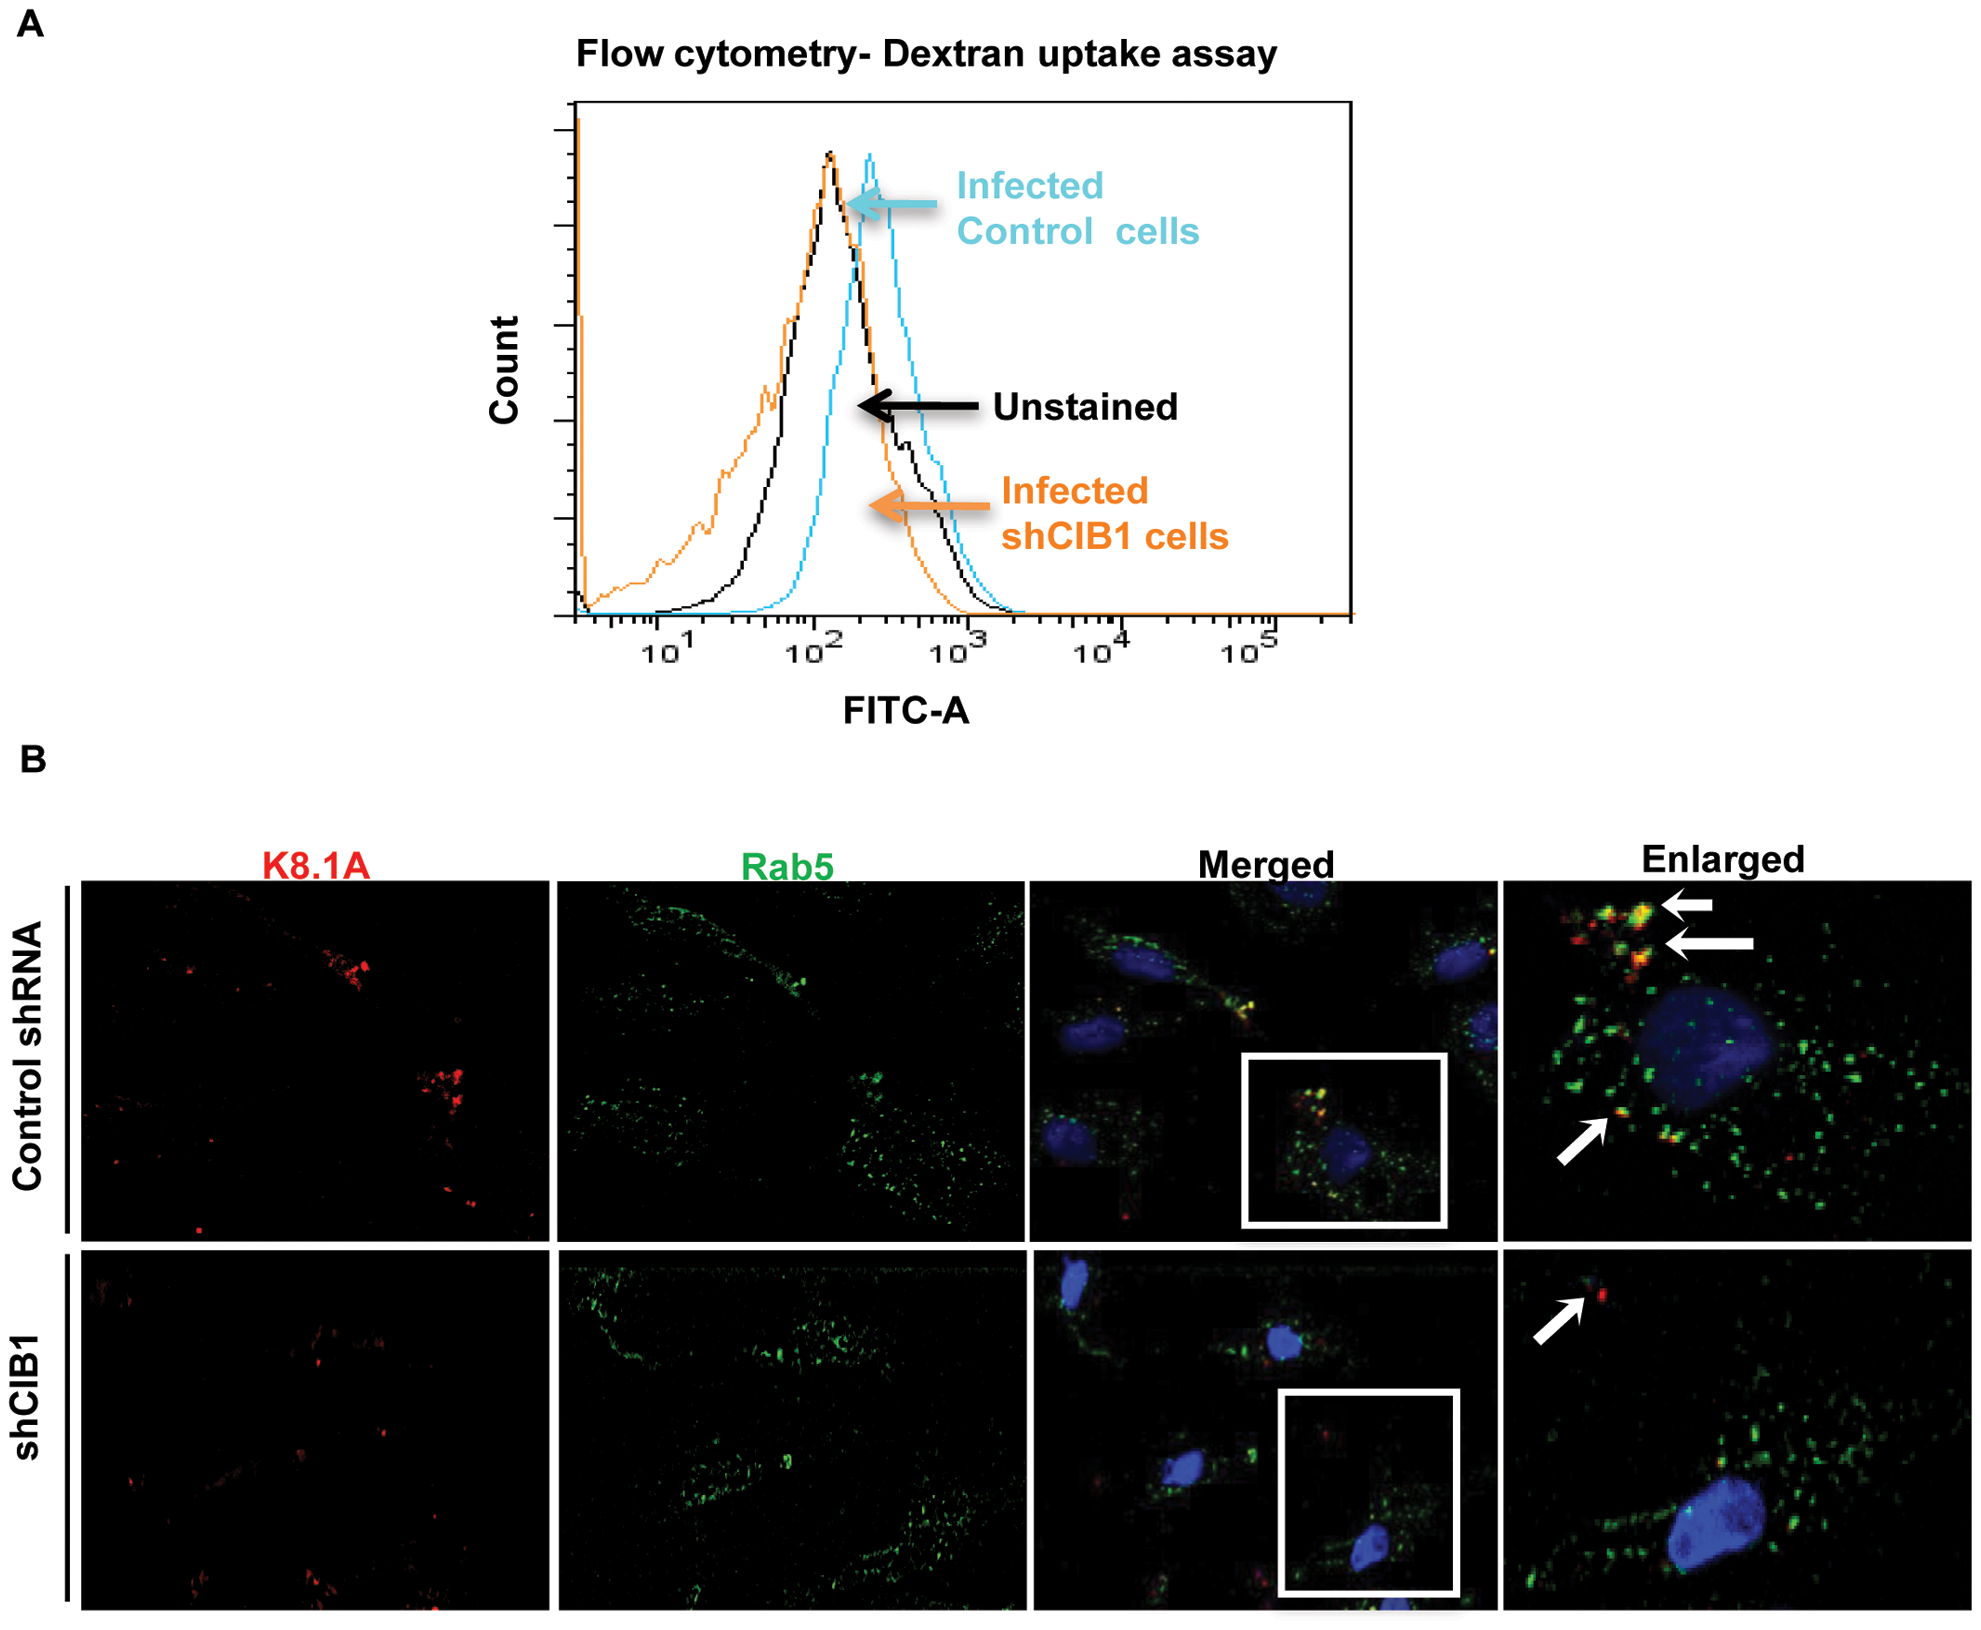 Effect of CIB1 knockdown on productive KSHV trafficking in endothelial cells.